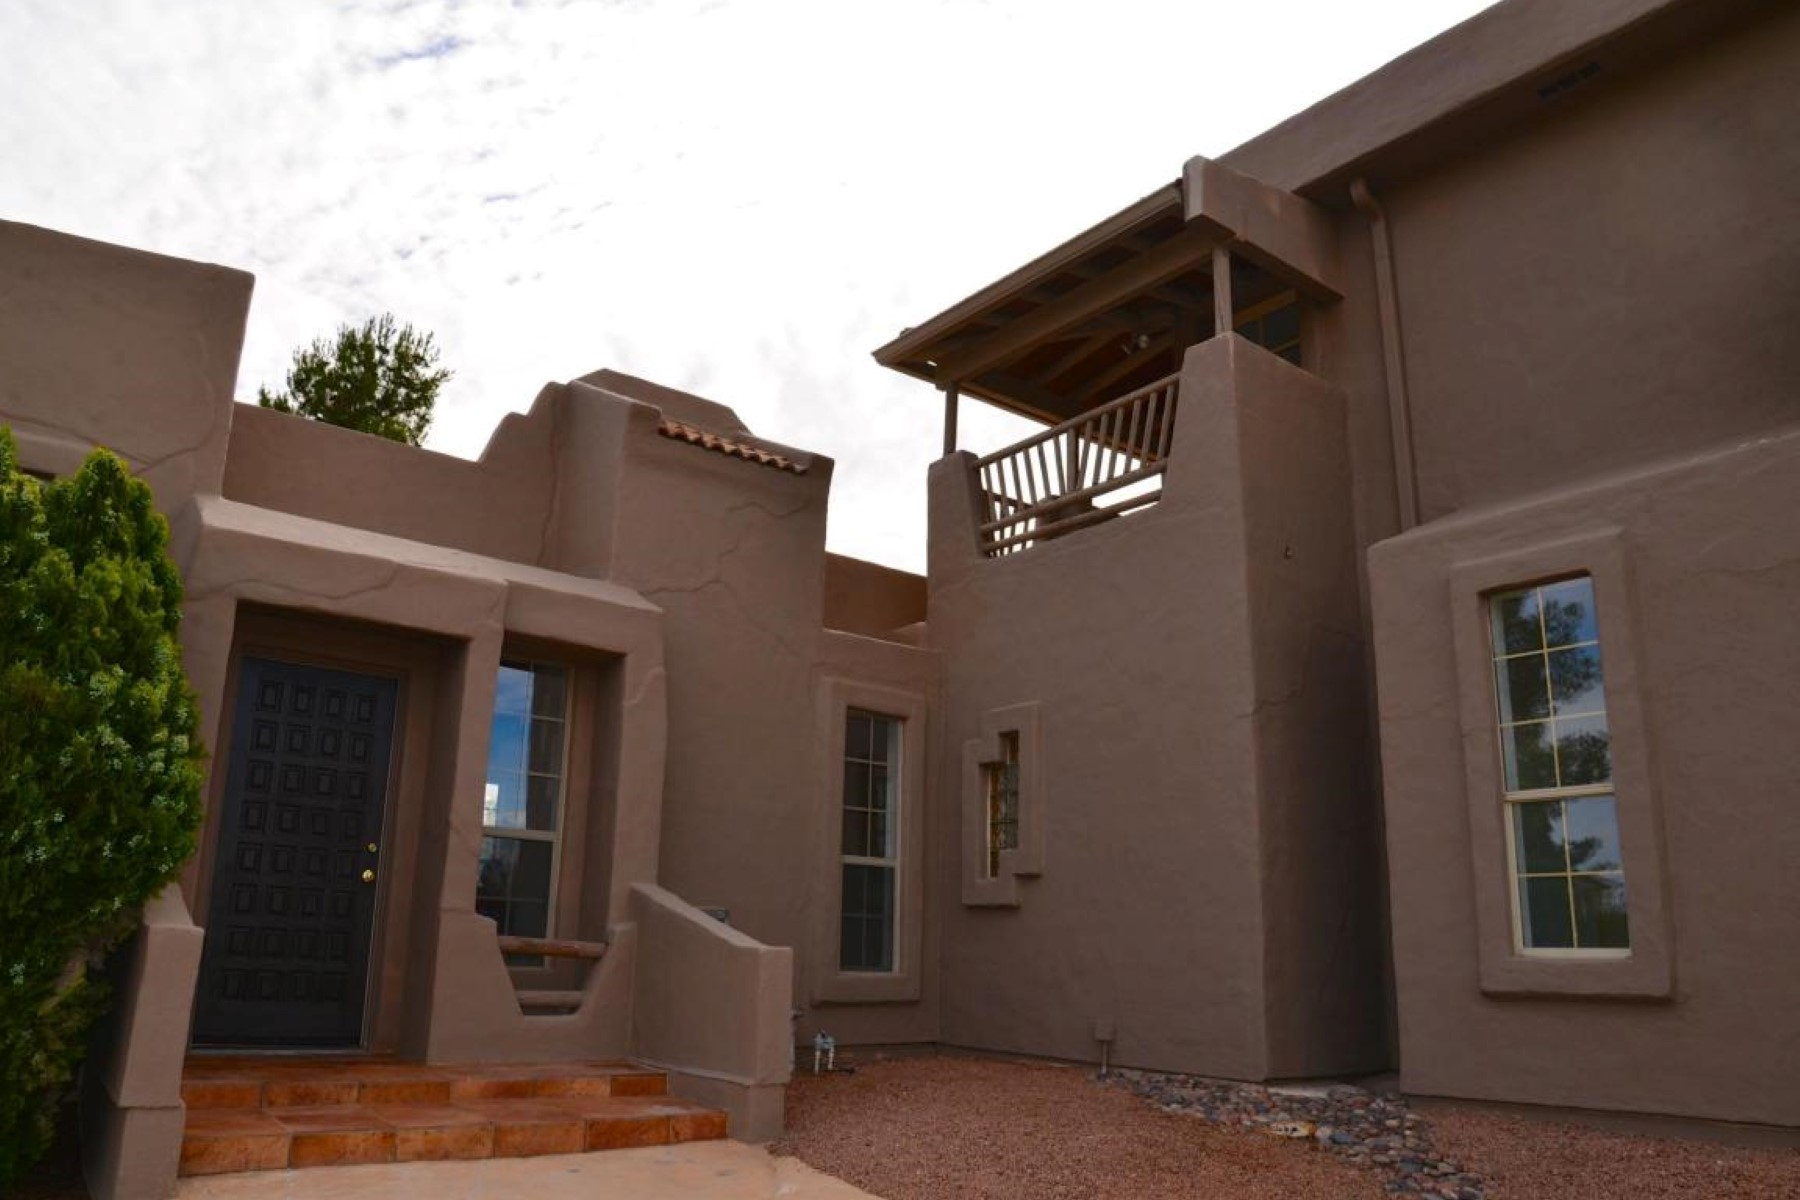 Single Family Home for Sale at Unique southwest home offers a birds eye view of the Verde Valley. 2254 S Tissaw Rd Cornville, Arizona 86325 United States